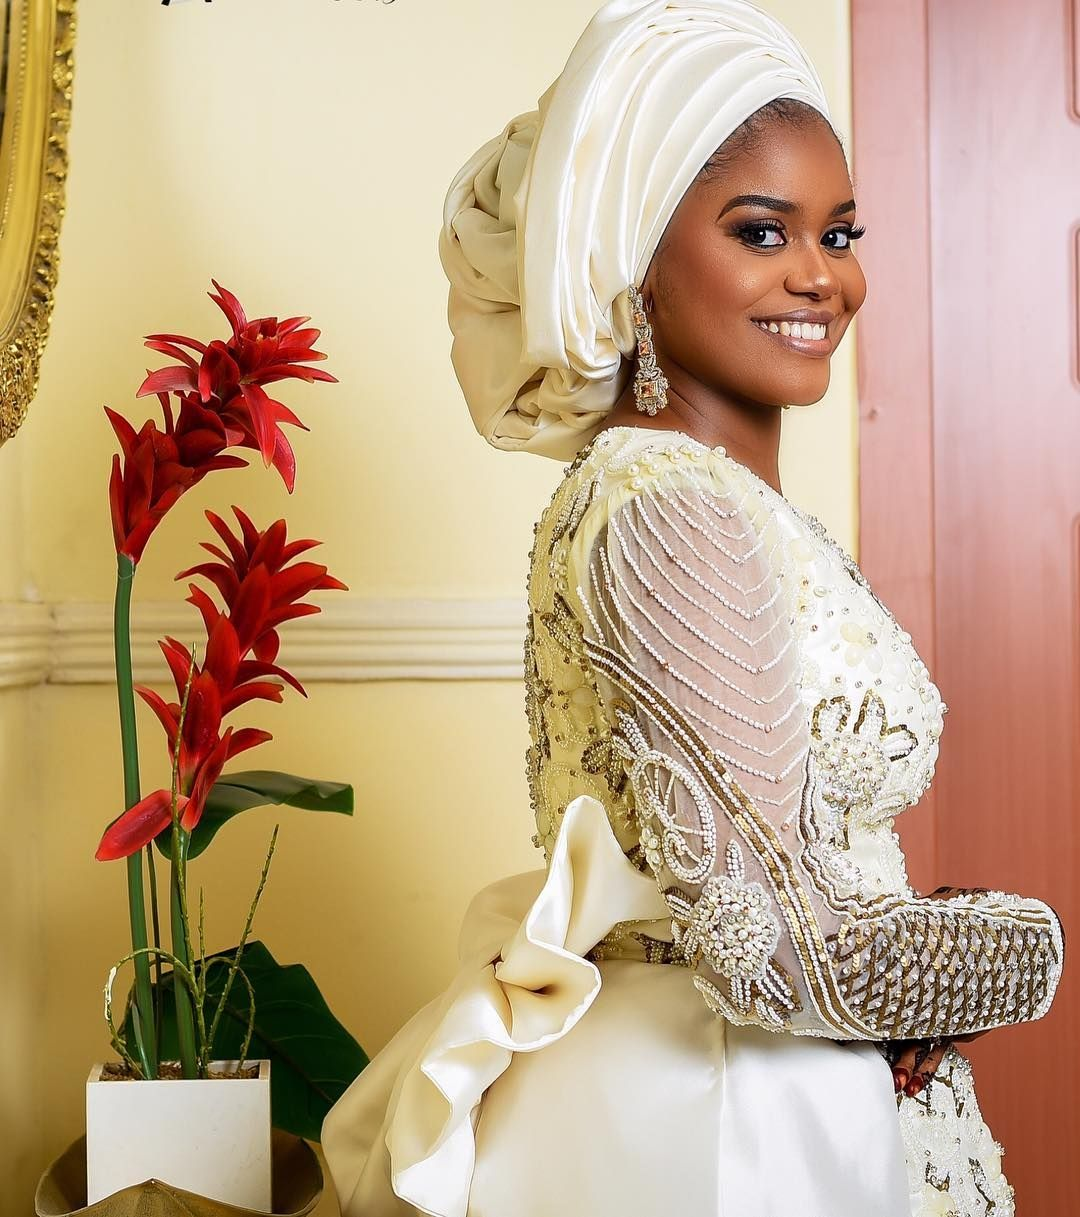 Beautiful Hausa Brides In Stunning Bridal Gowns Wedding Digest Naija In 2020 Hausa Bride Traditional Wedding Attire Bridal Gowns